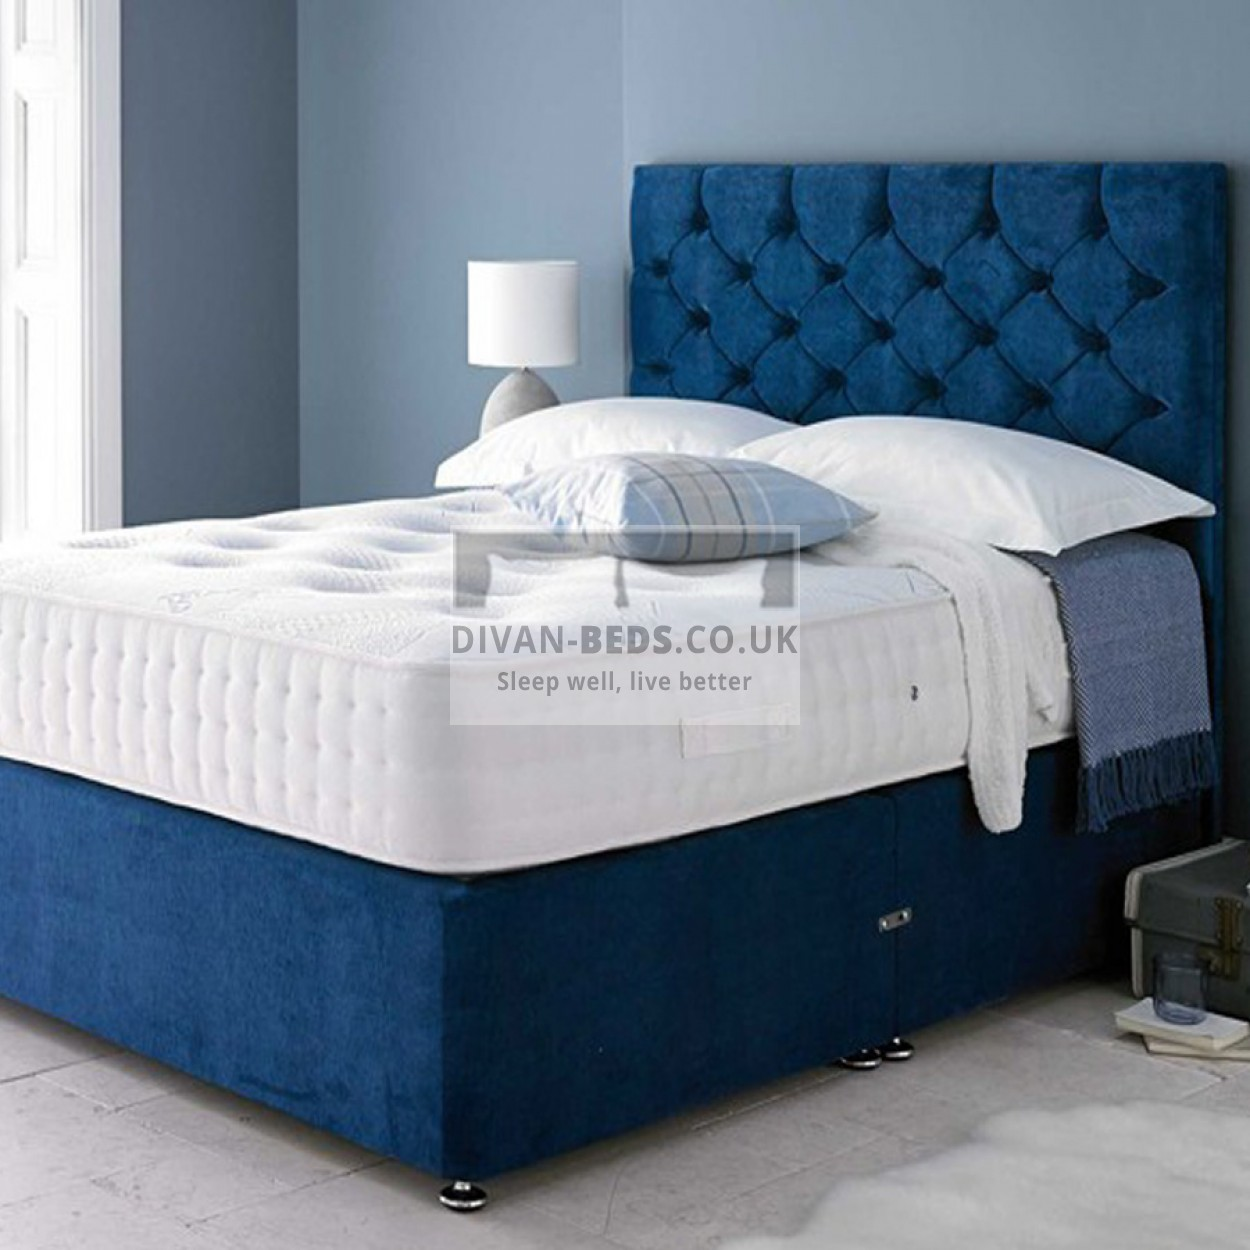 Oliver Sensation Luxury Ottoman Divan Bed With Headboard